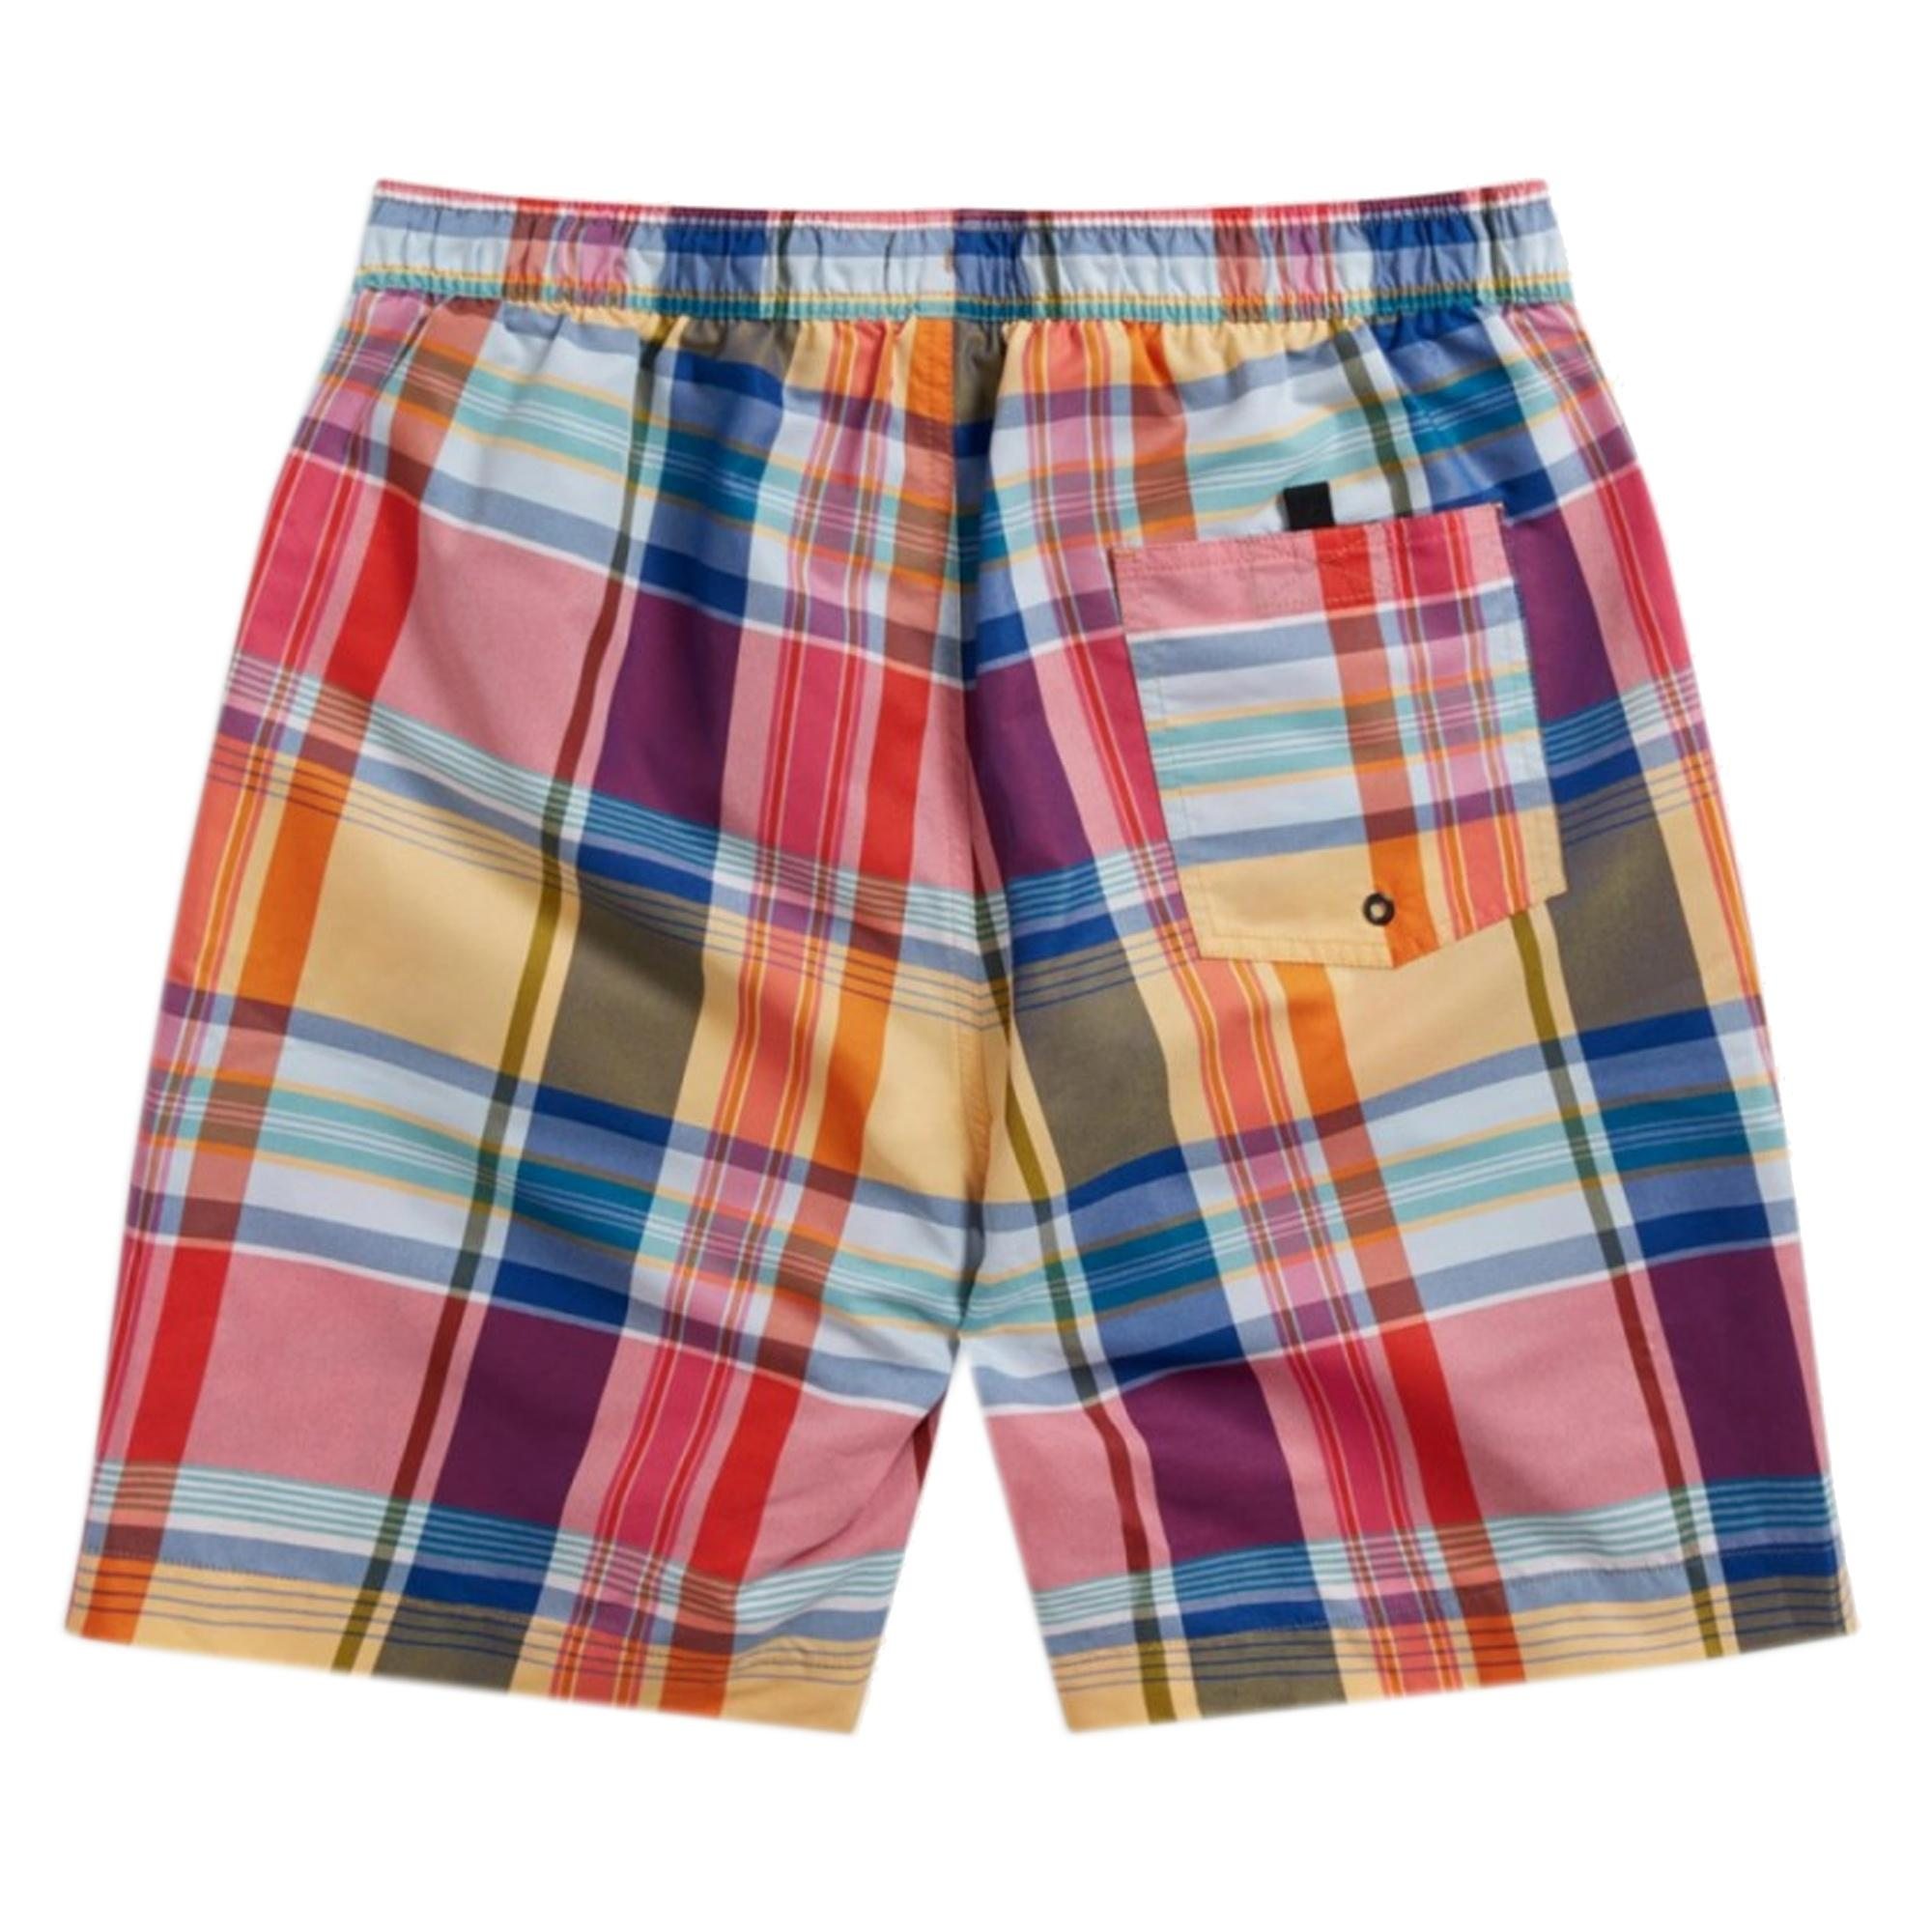 91abebc674 Fred Perry Authentic - Multicolor Madras Check Swim Shorts for Men - Lyst.  View fullscreen